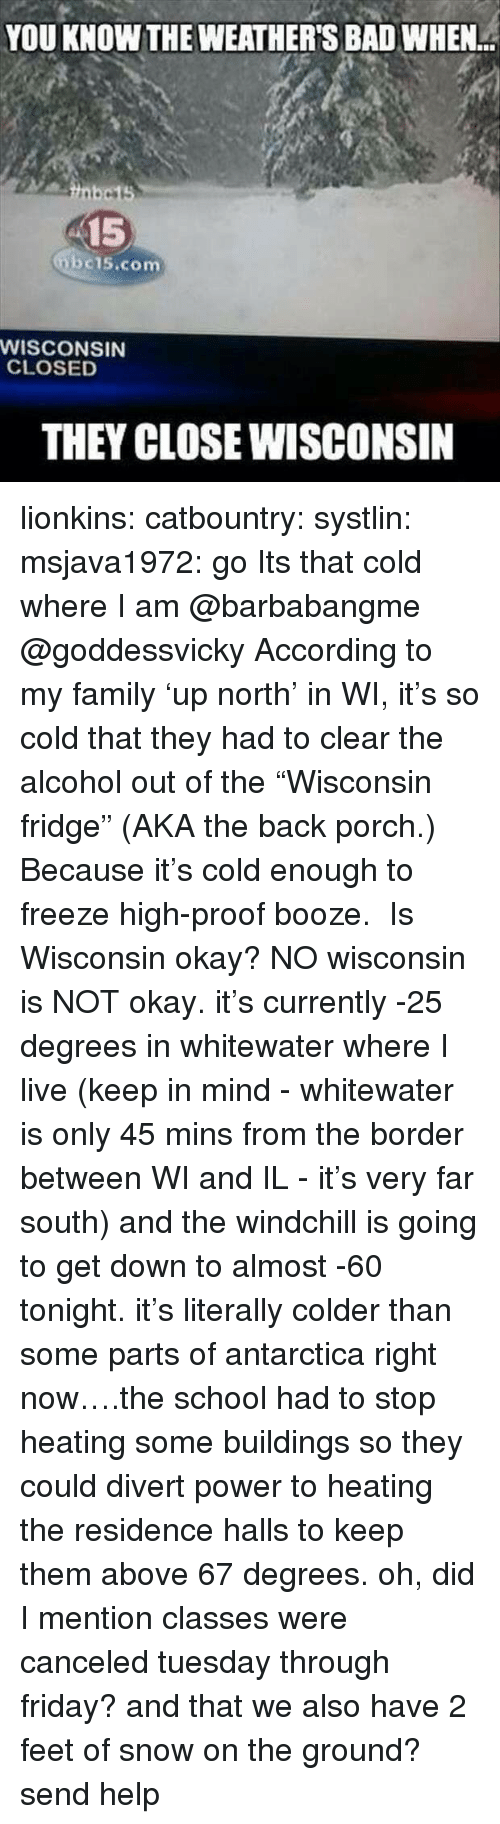 """Bad, Family, and Friday: YOU KNOW THE WEATHER'S BAD WHEN  15  bc15.com  WISCONSIN  CLOSED  THEY CLOSE WISCONSIN lionkins:  catbountry:  systlin:  msjava1972:  go Its that cold where I am @barbabangme @goddessvicky  According to my family'up north' in WI, it's so cold that they had to clear the alcohol out of the""""Wisconsin fridge"""" (AKA the back porch.) Because it's cold enough to freeze high-proof booze.  Is Wisconsin okay?  NO wisconsin is NOT okay. it's currently -25 degrees in whitewater where I live (keep in mind - whitewater is only 45 mins from the border between WI and IL - it's very far south) and the windchill is going to get down to almost -60 tonight. it's literally colder than some parts of antarctica right now….the school had to stop heating some buildings so they could divert power to heating the residence halls to keep them above 67 degrees. oh, did I mention classes were canceled tuesday through friday? and that we also have 2 feet of snow on the ground?send help"""